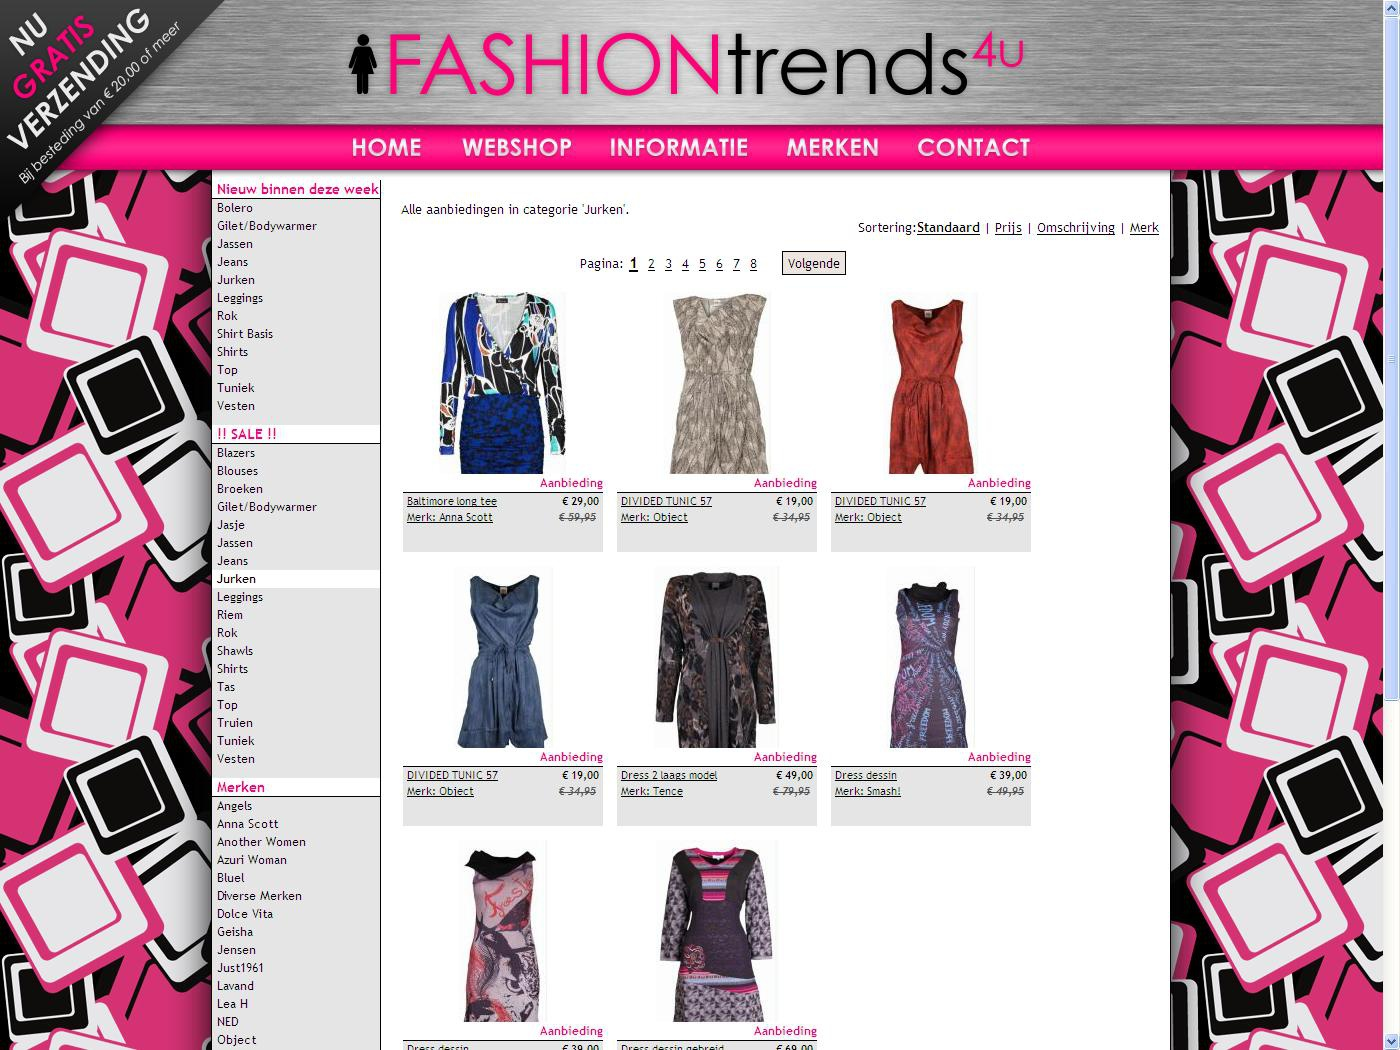 Fashion-trends-for-u-fashiontrends4u-easyPOS-software-website